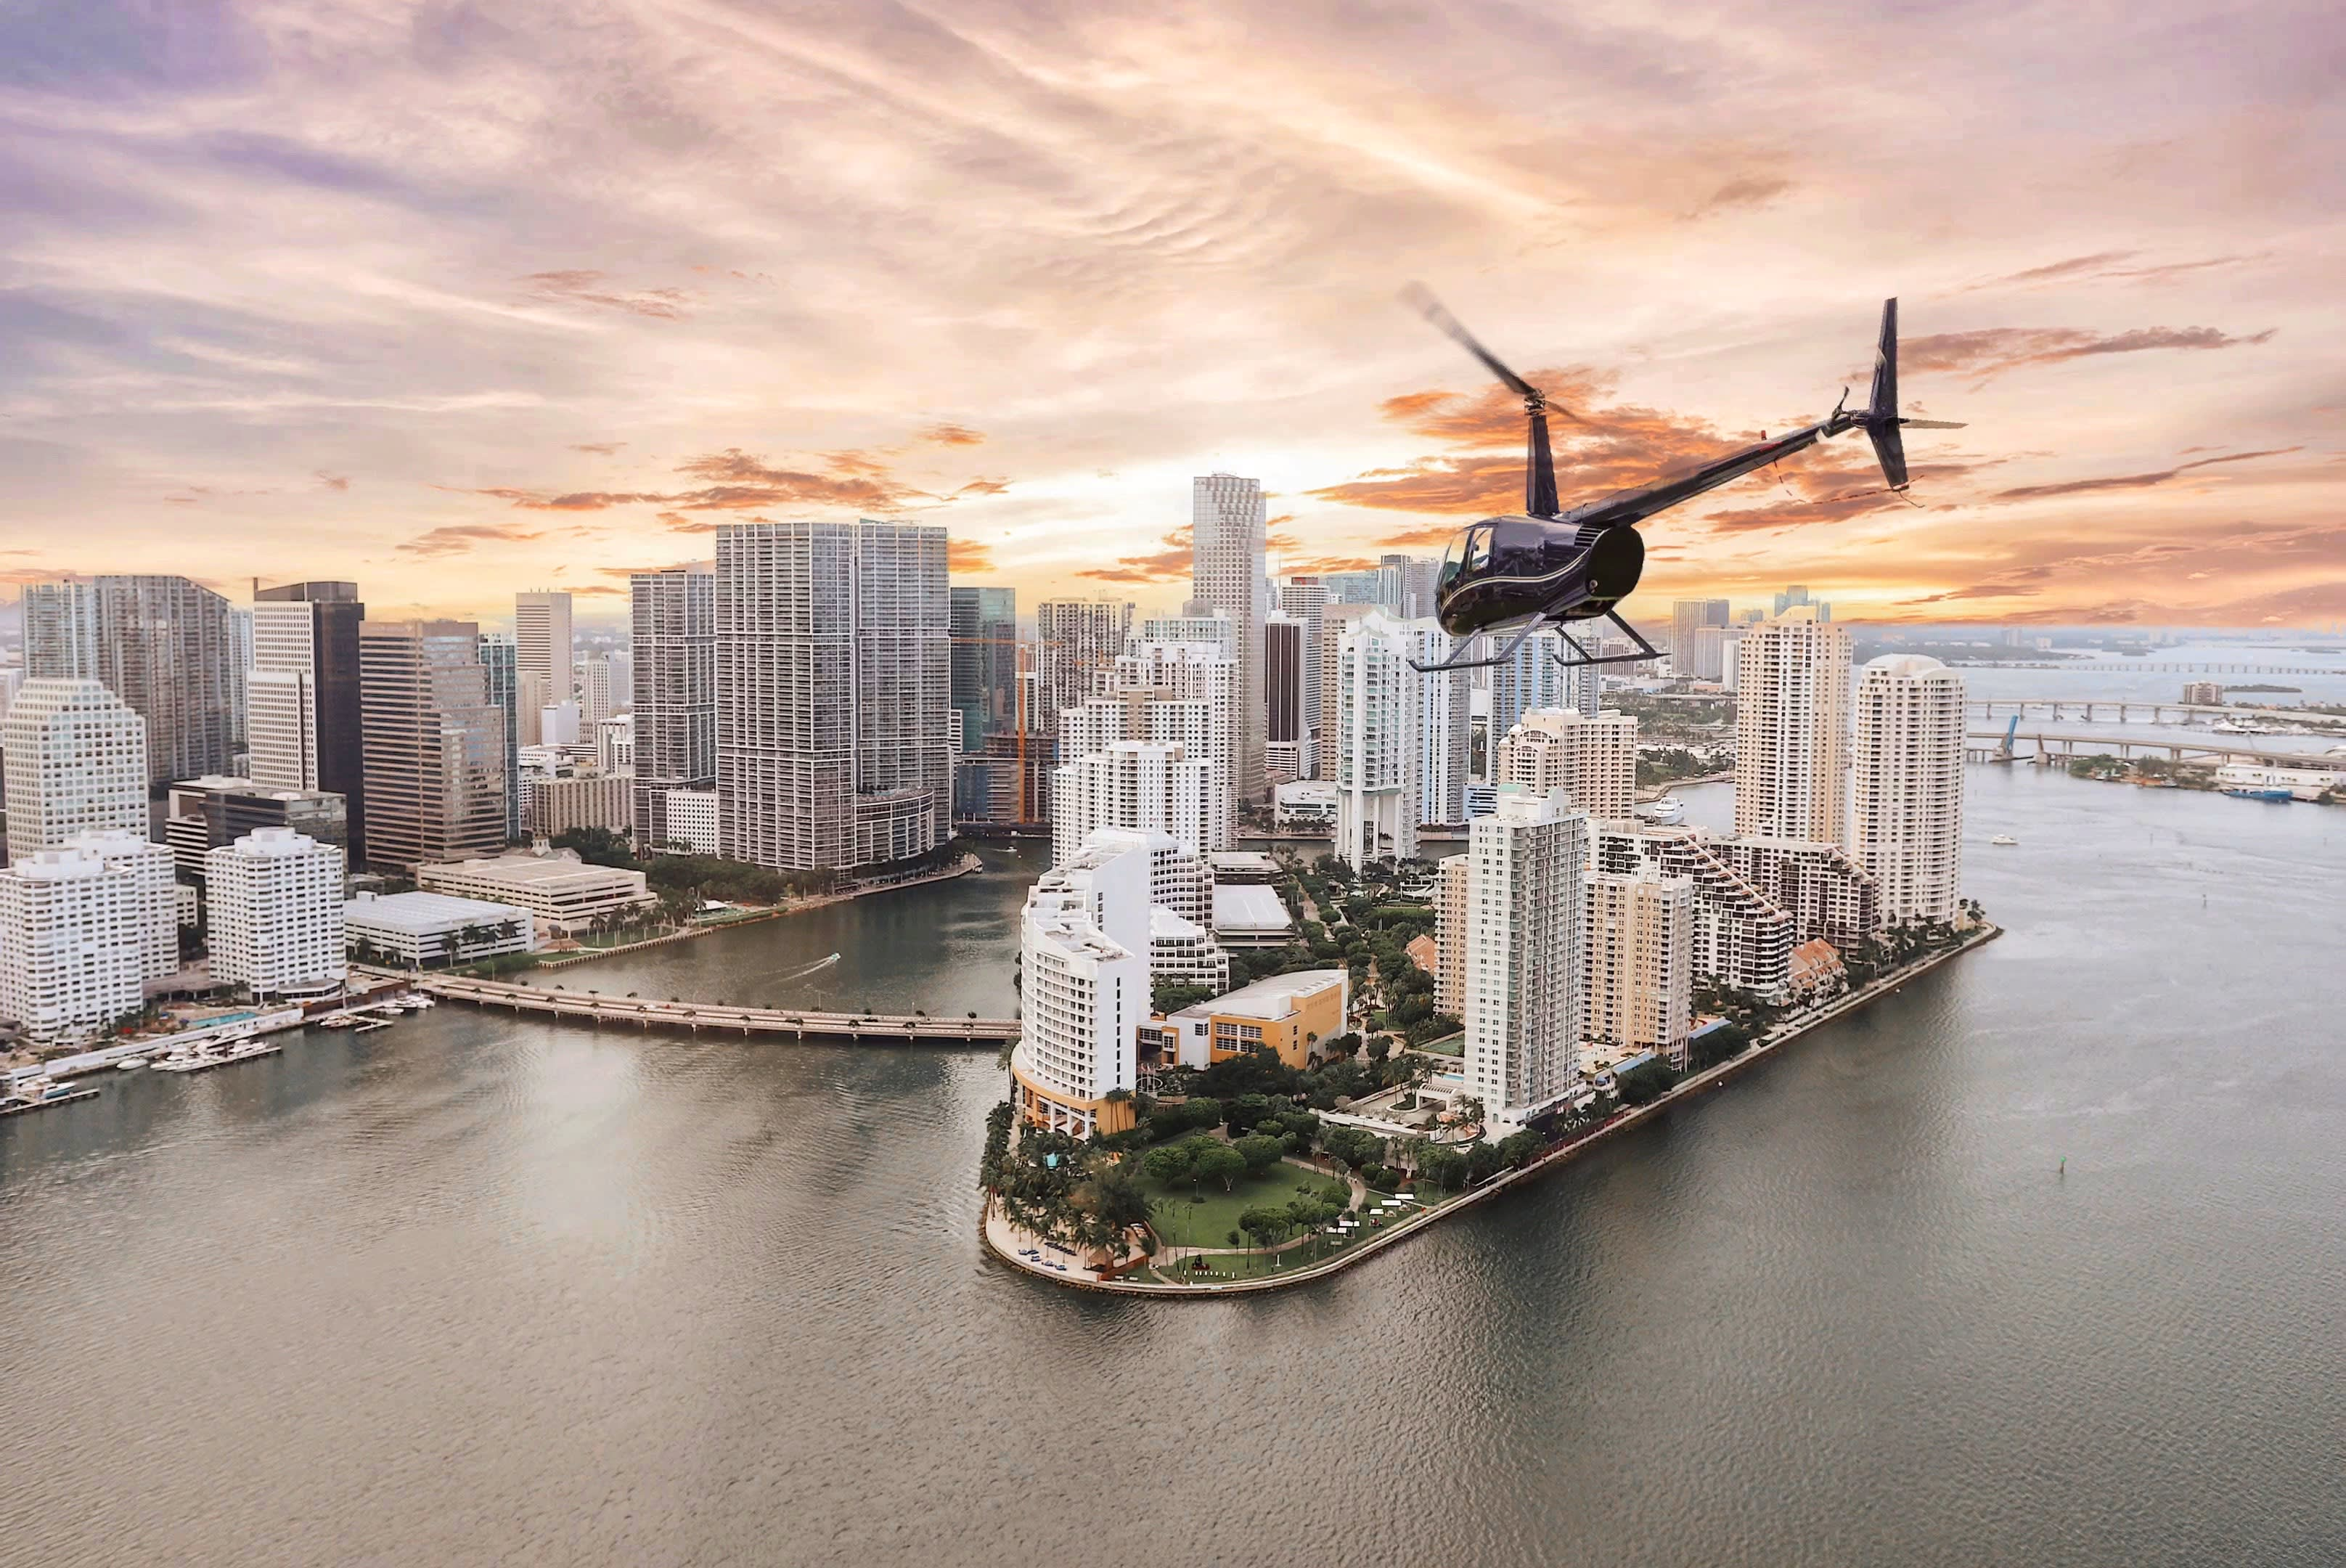 Private Helicopter Tour Miami, Sunset Flight - 30 Minutes